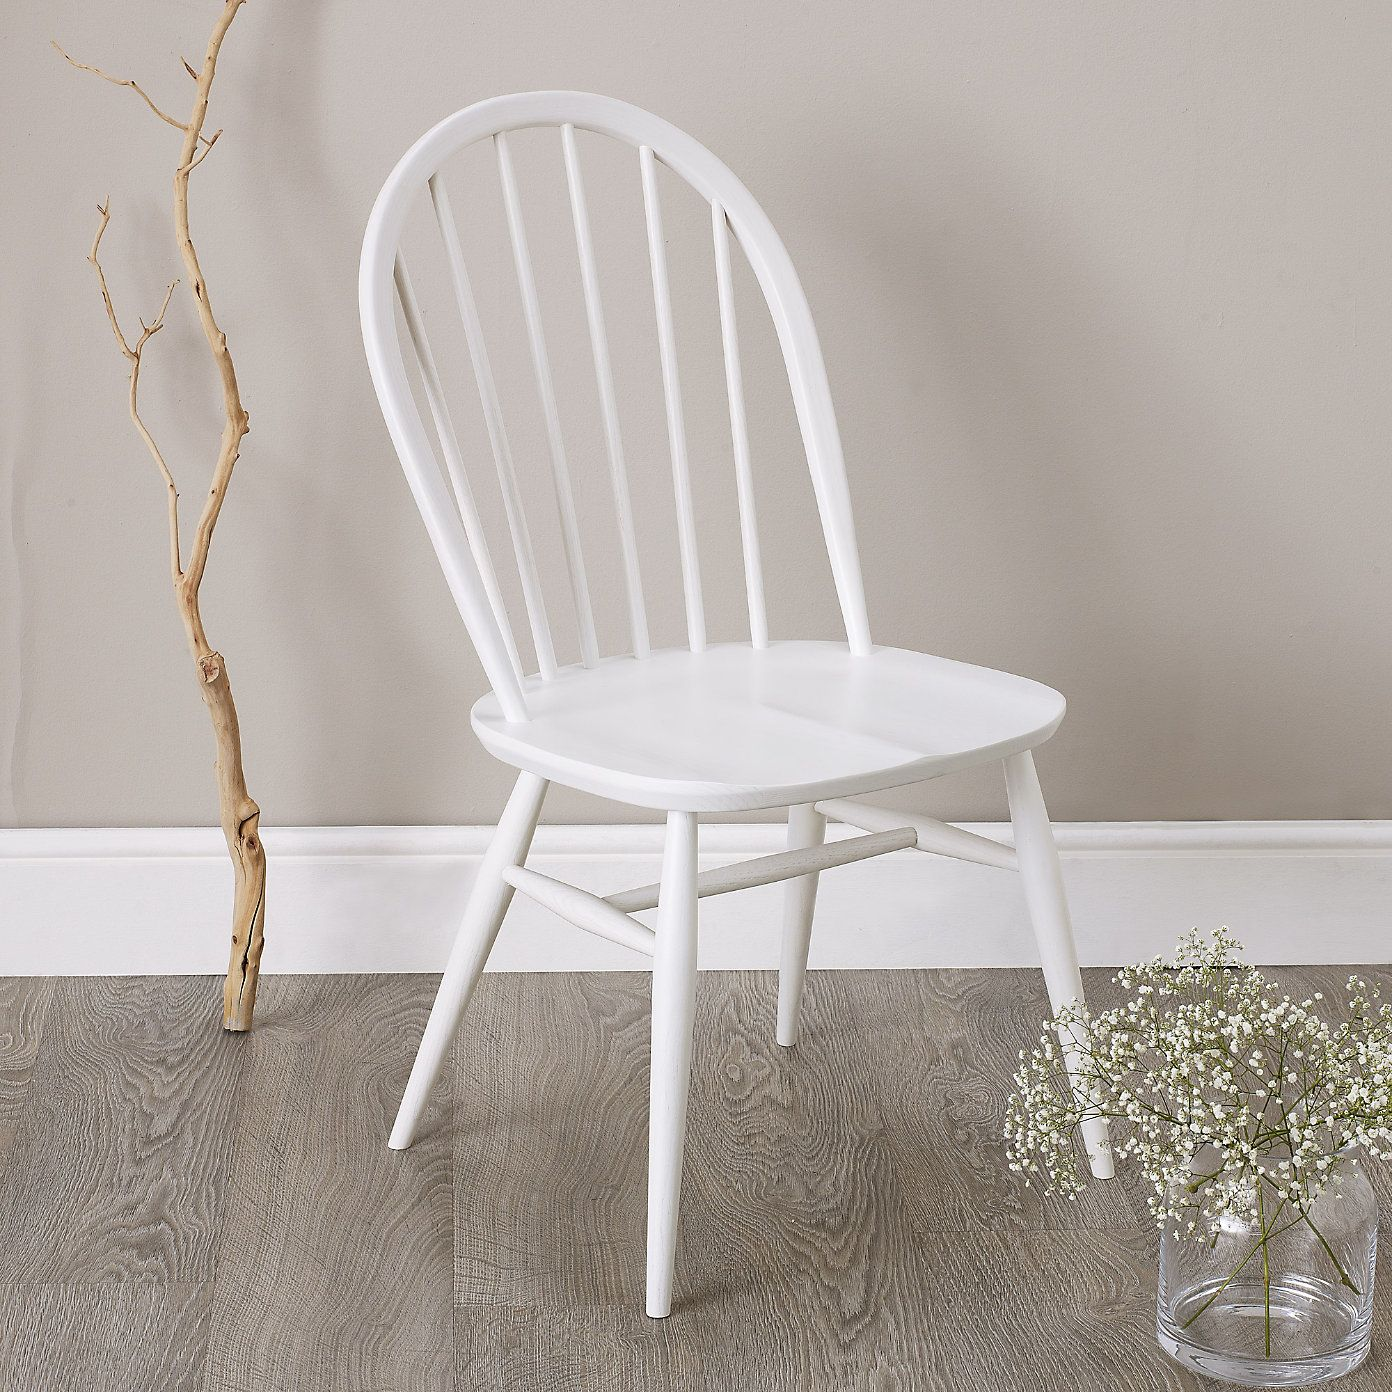 Ercol Windsor Dining Chair Ercol Furniture With Images